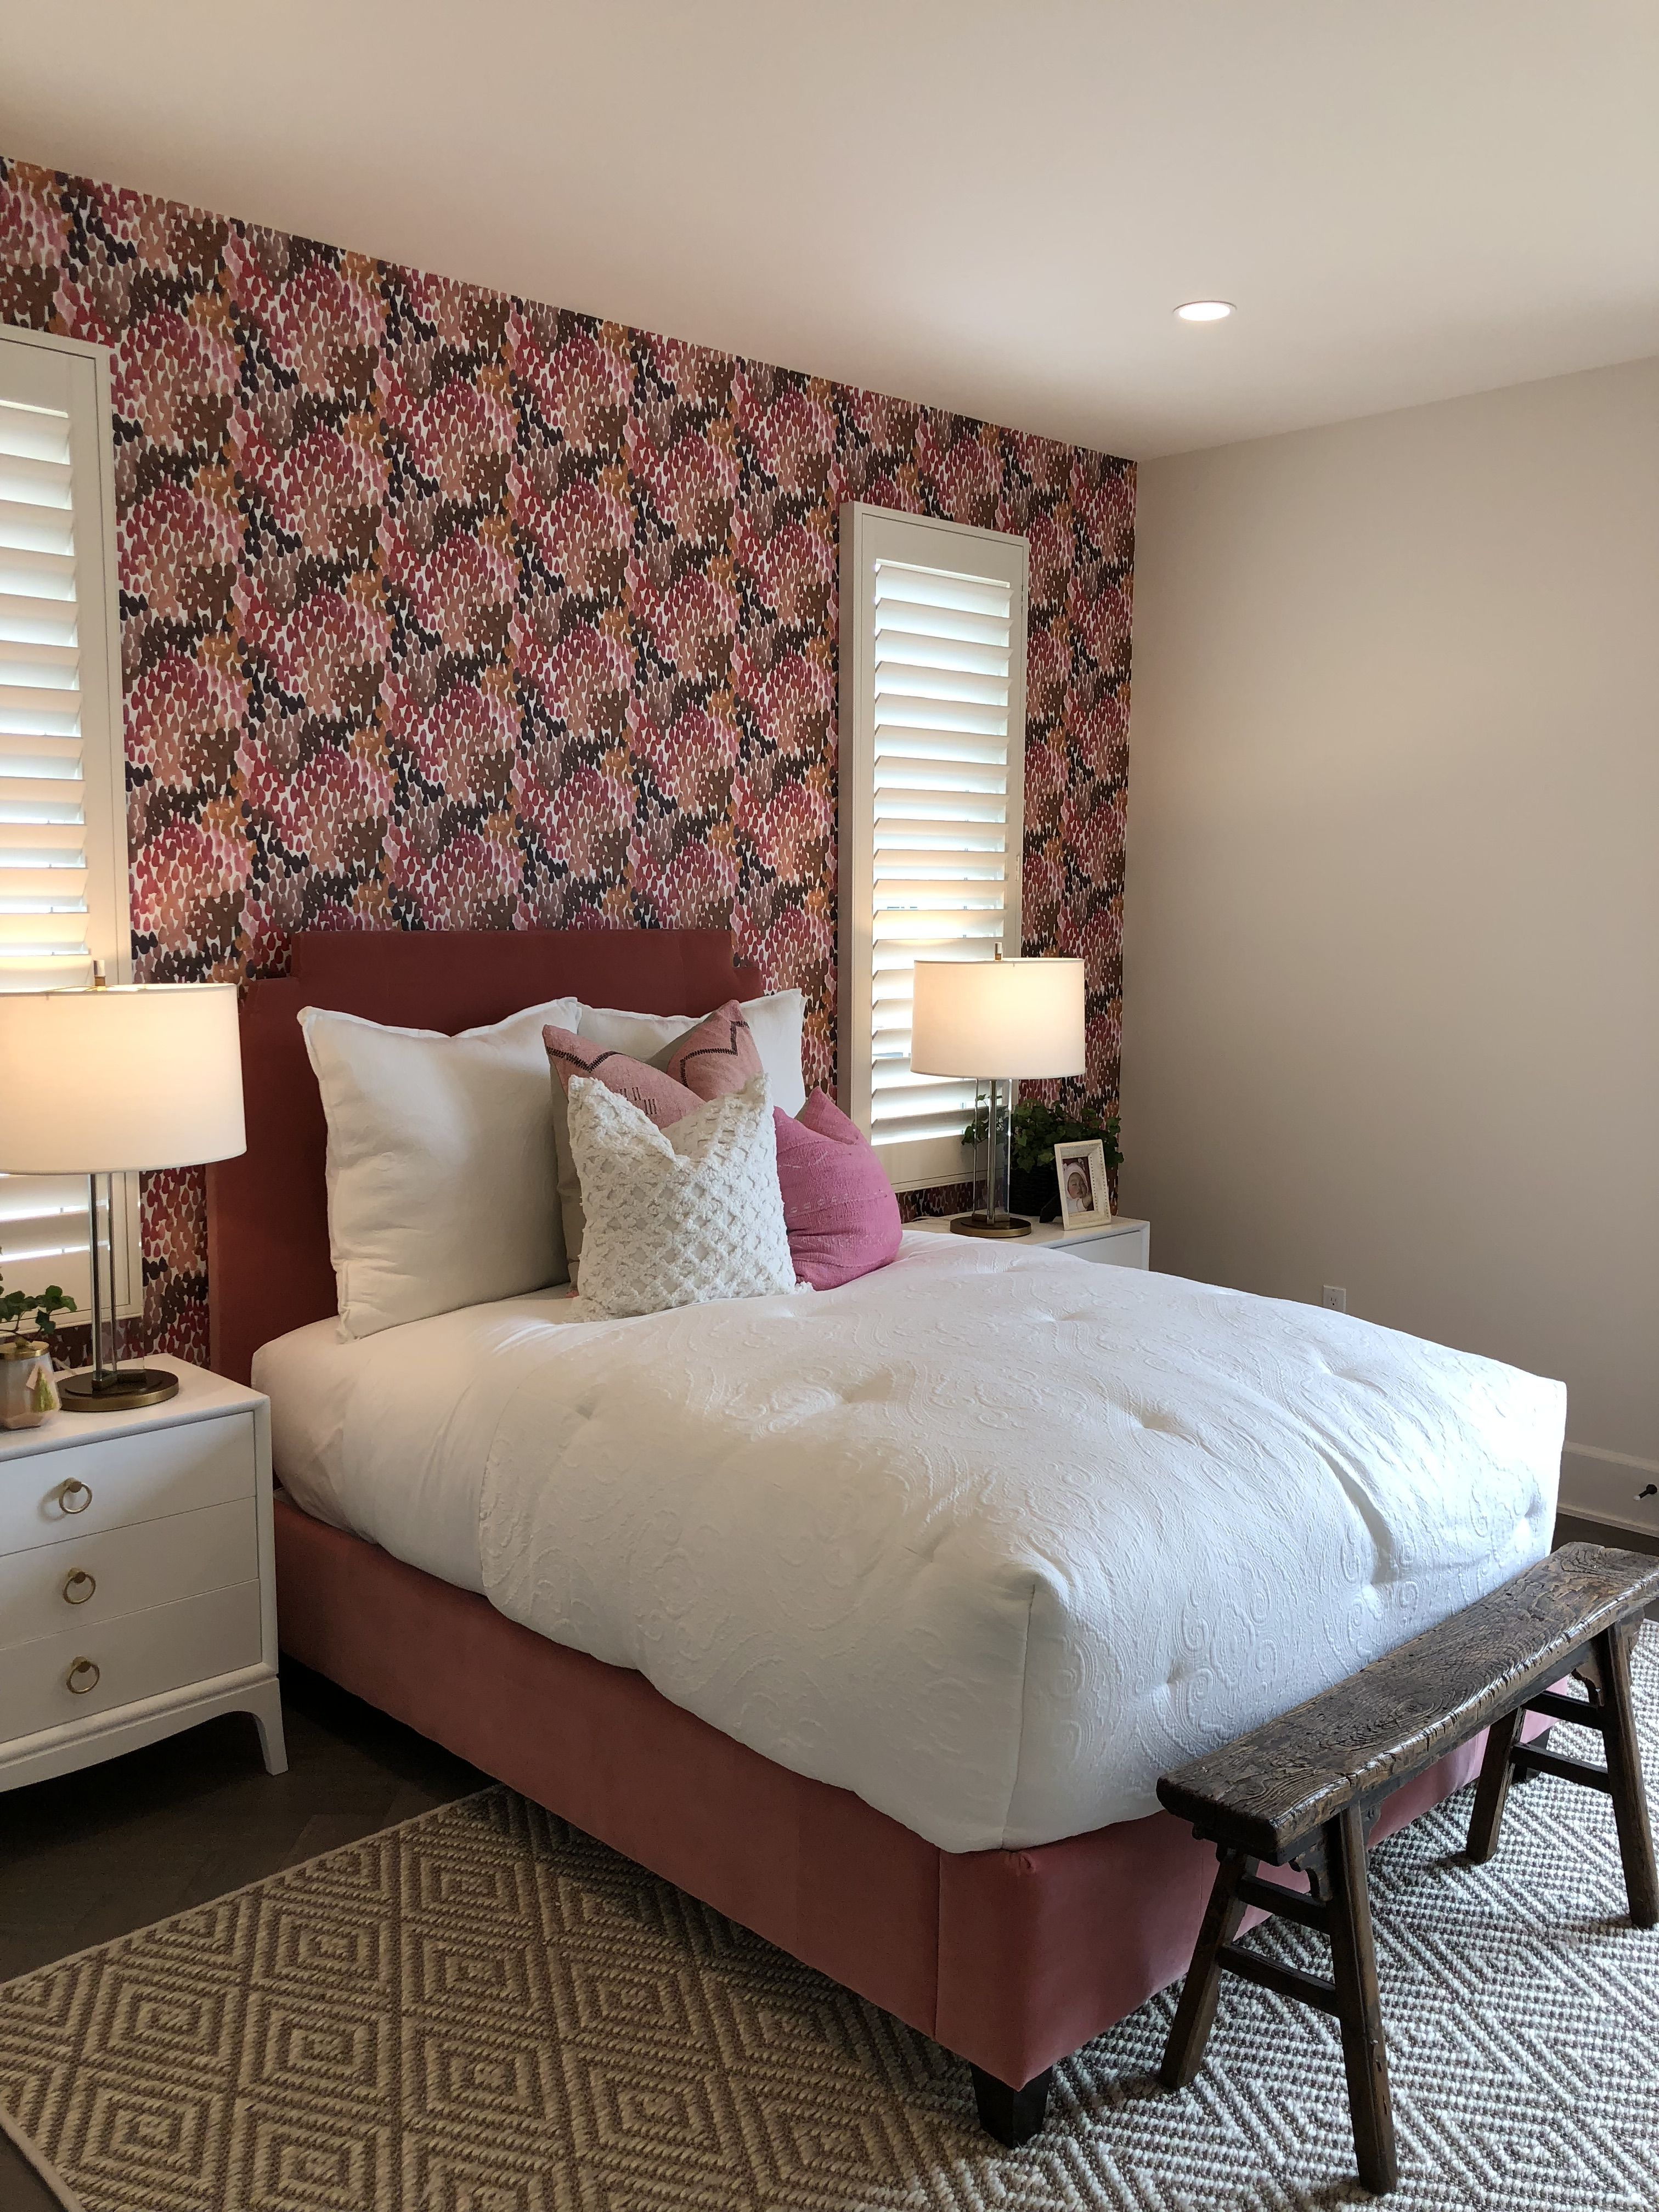 Barcelona At Los Olivos Bedrooms Feature Light Filled Rooms